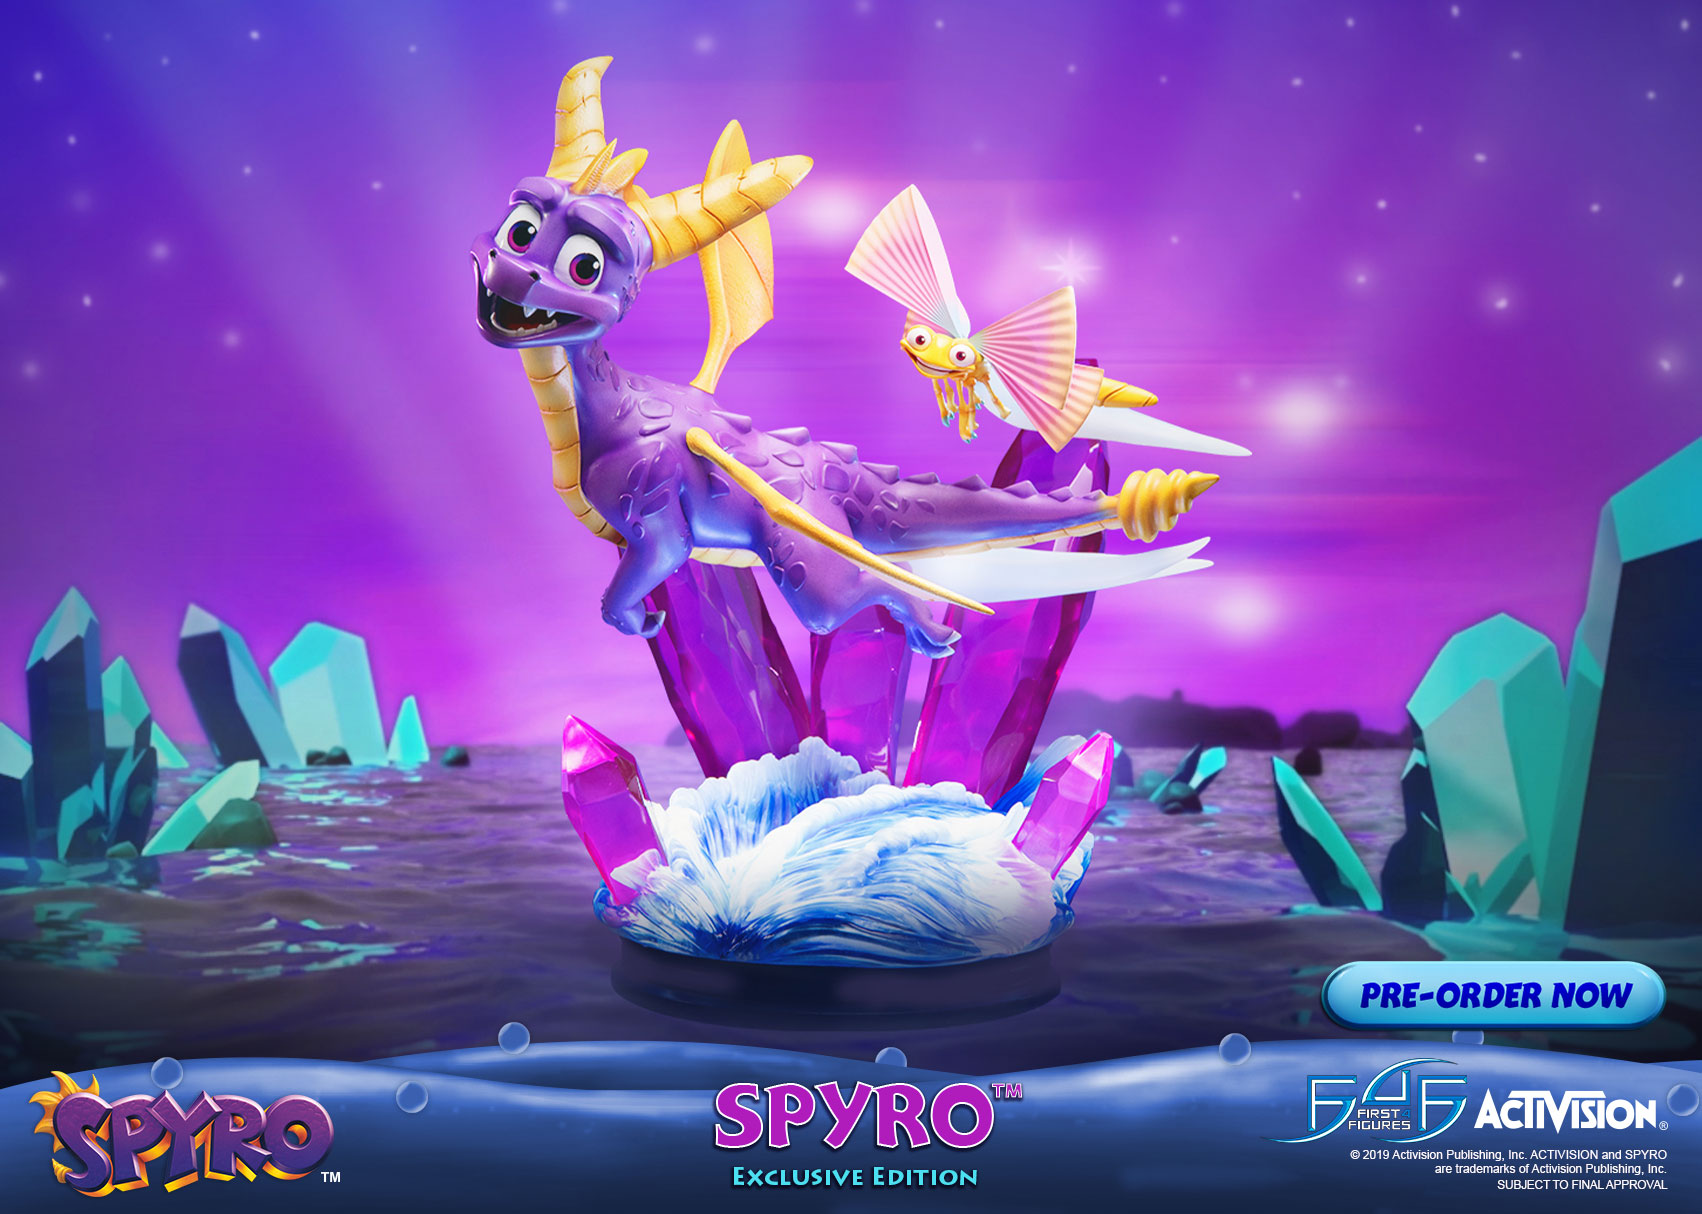 Spyro™ pre-orders NOW OPEN!